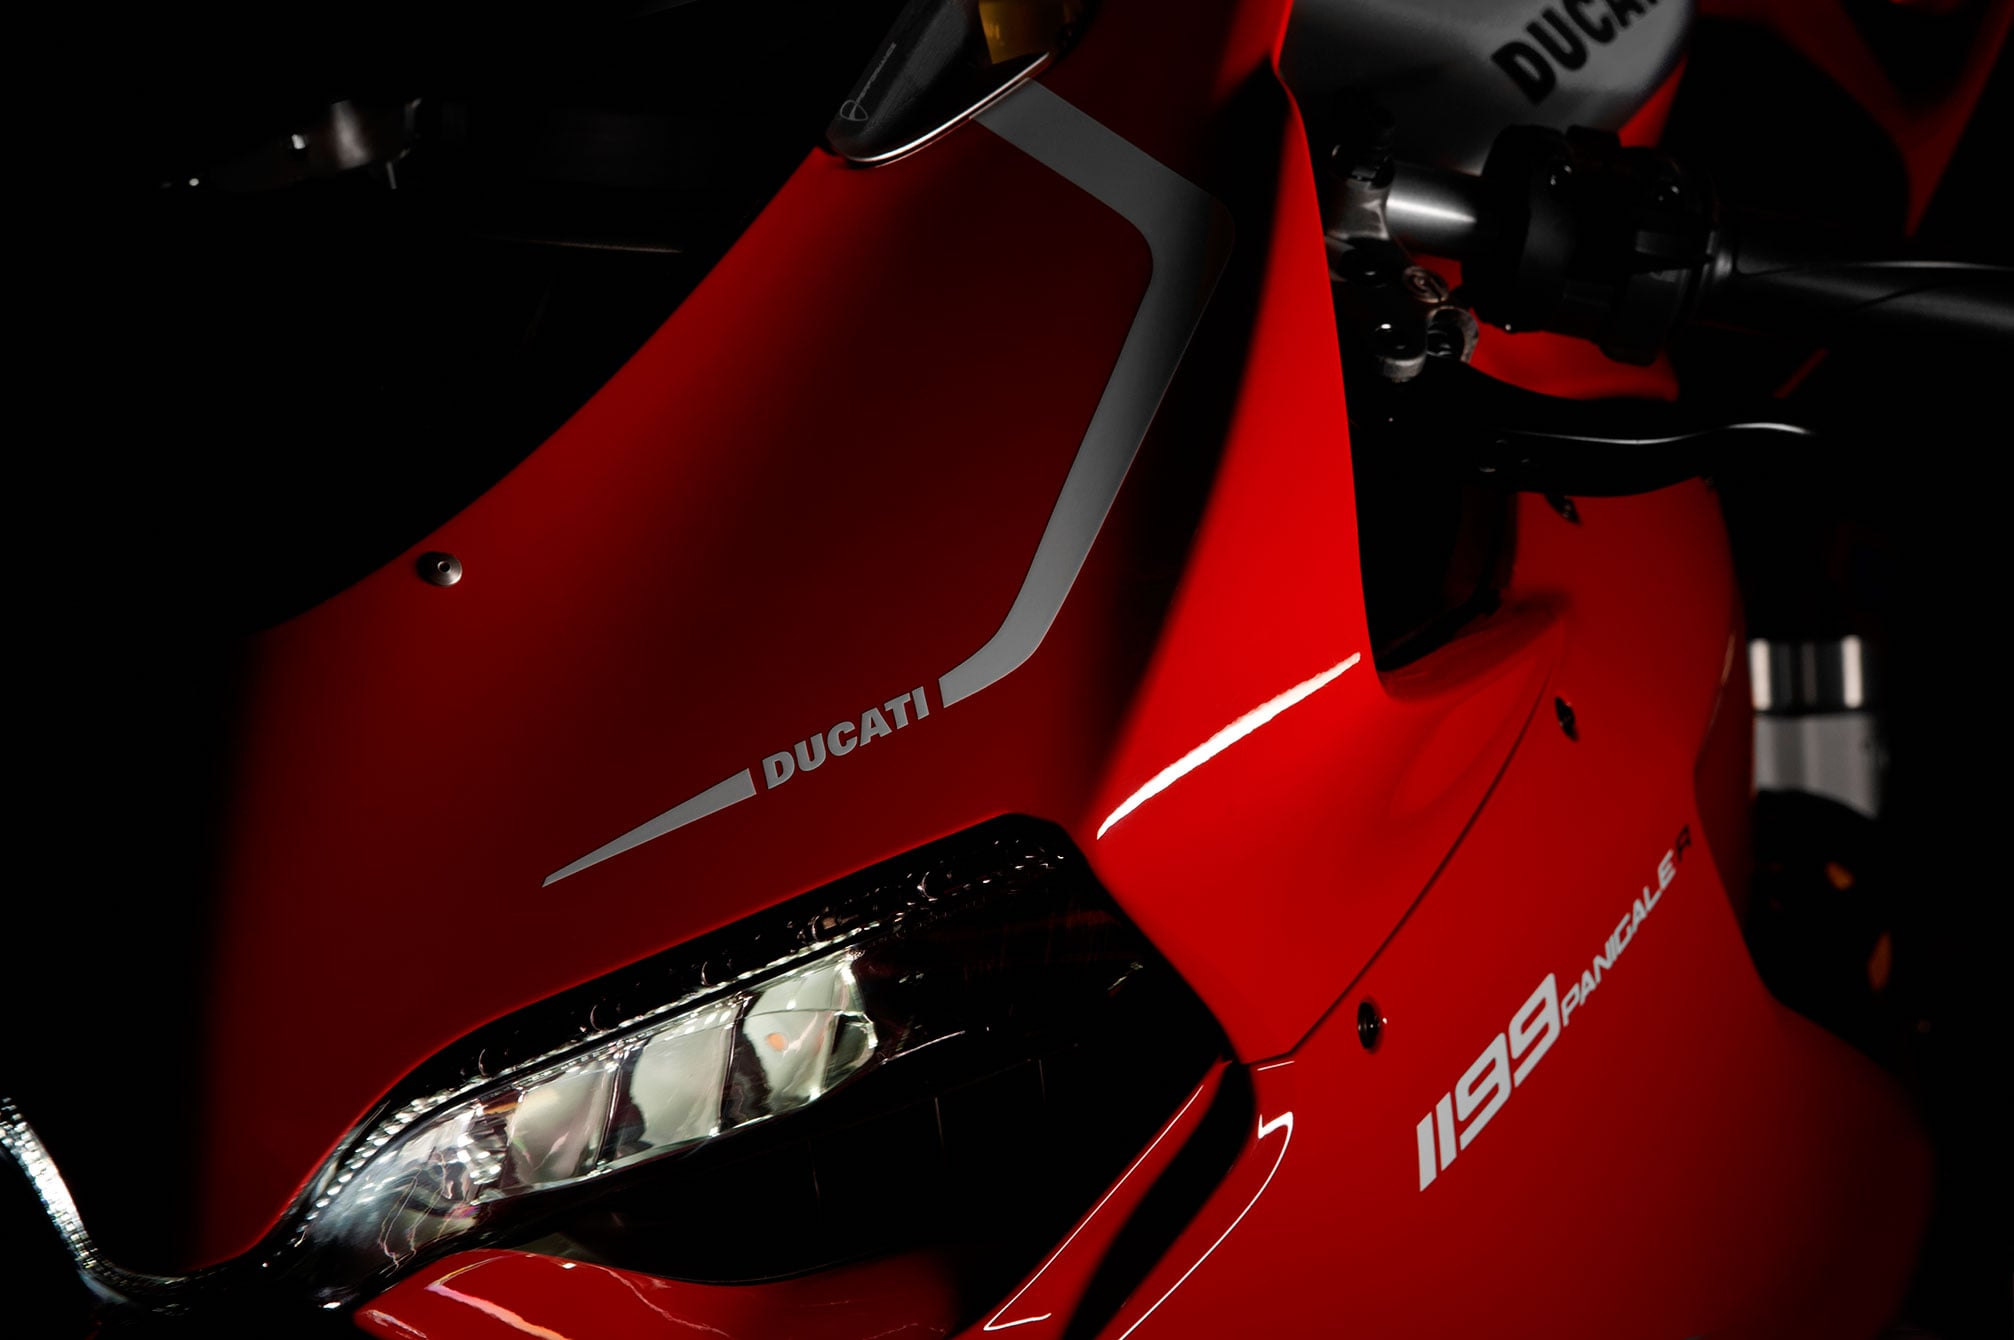 Ducati Superbike Hd Wallpaper